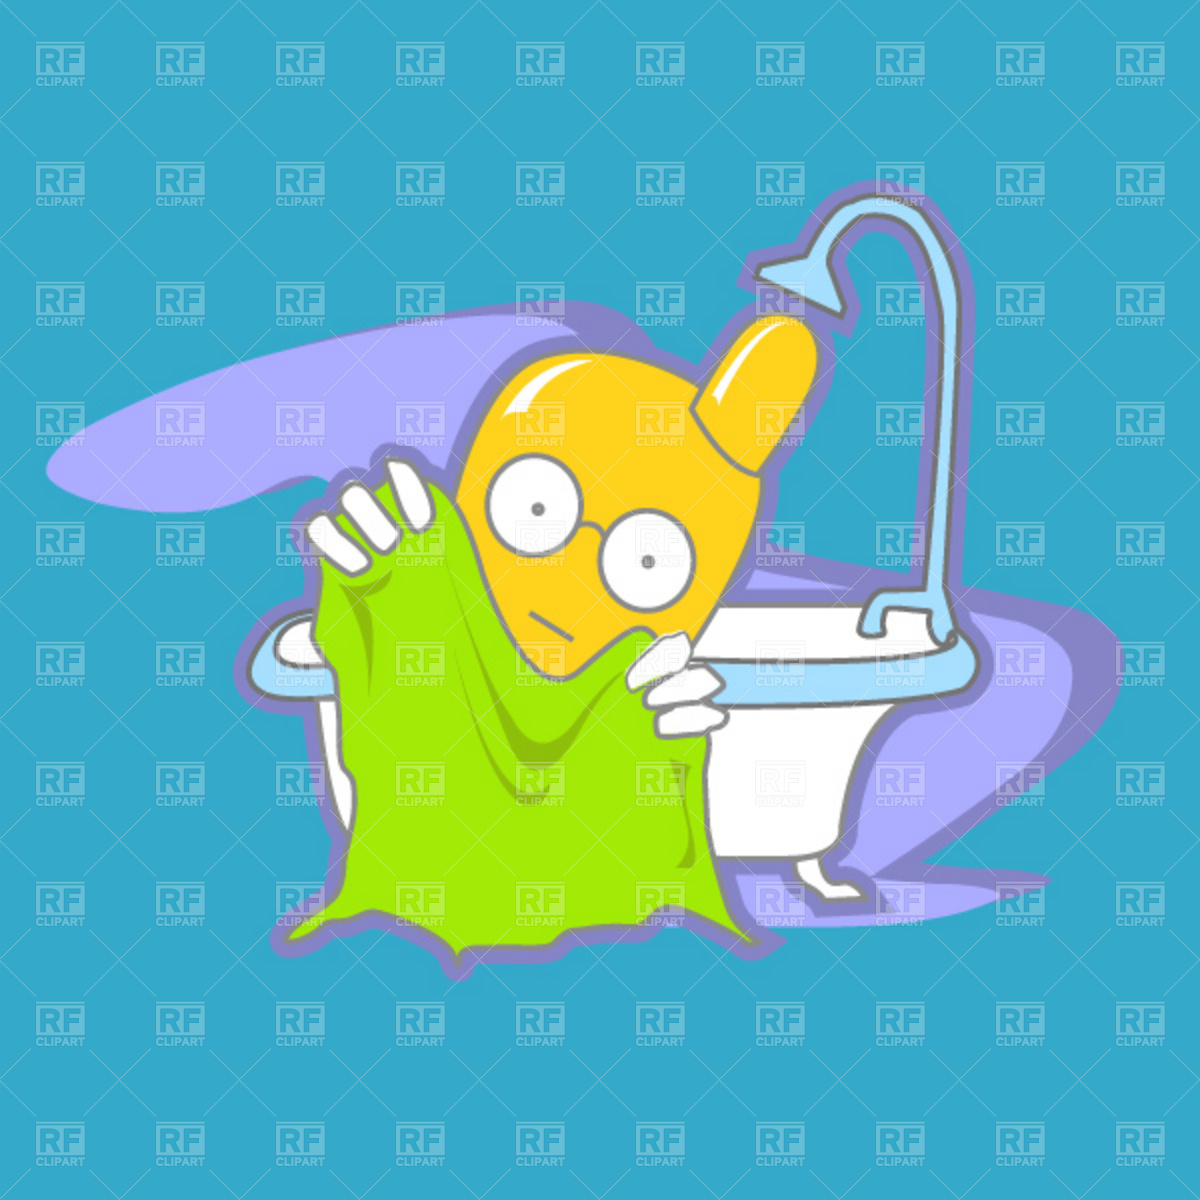 Cartoon mobile phone in the bathroom Vector Image #1918.